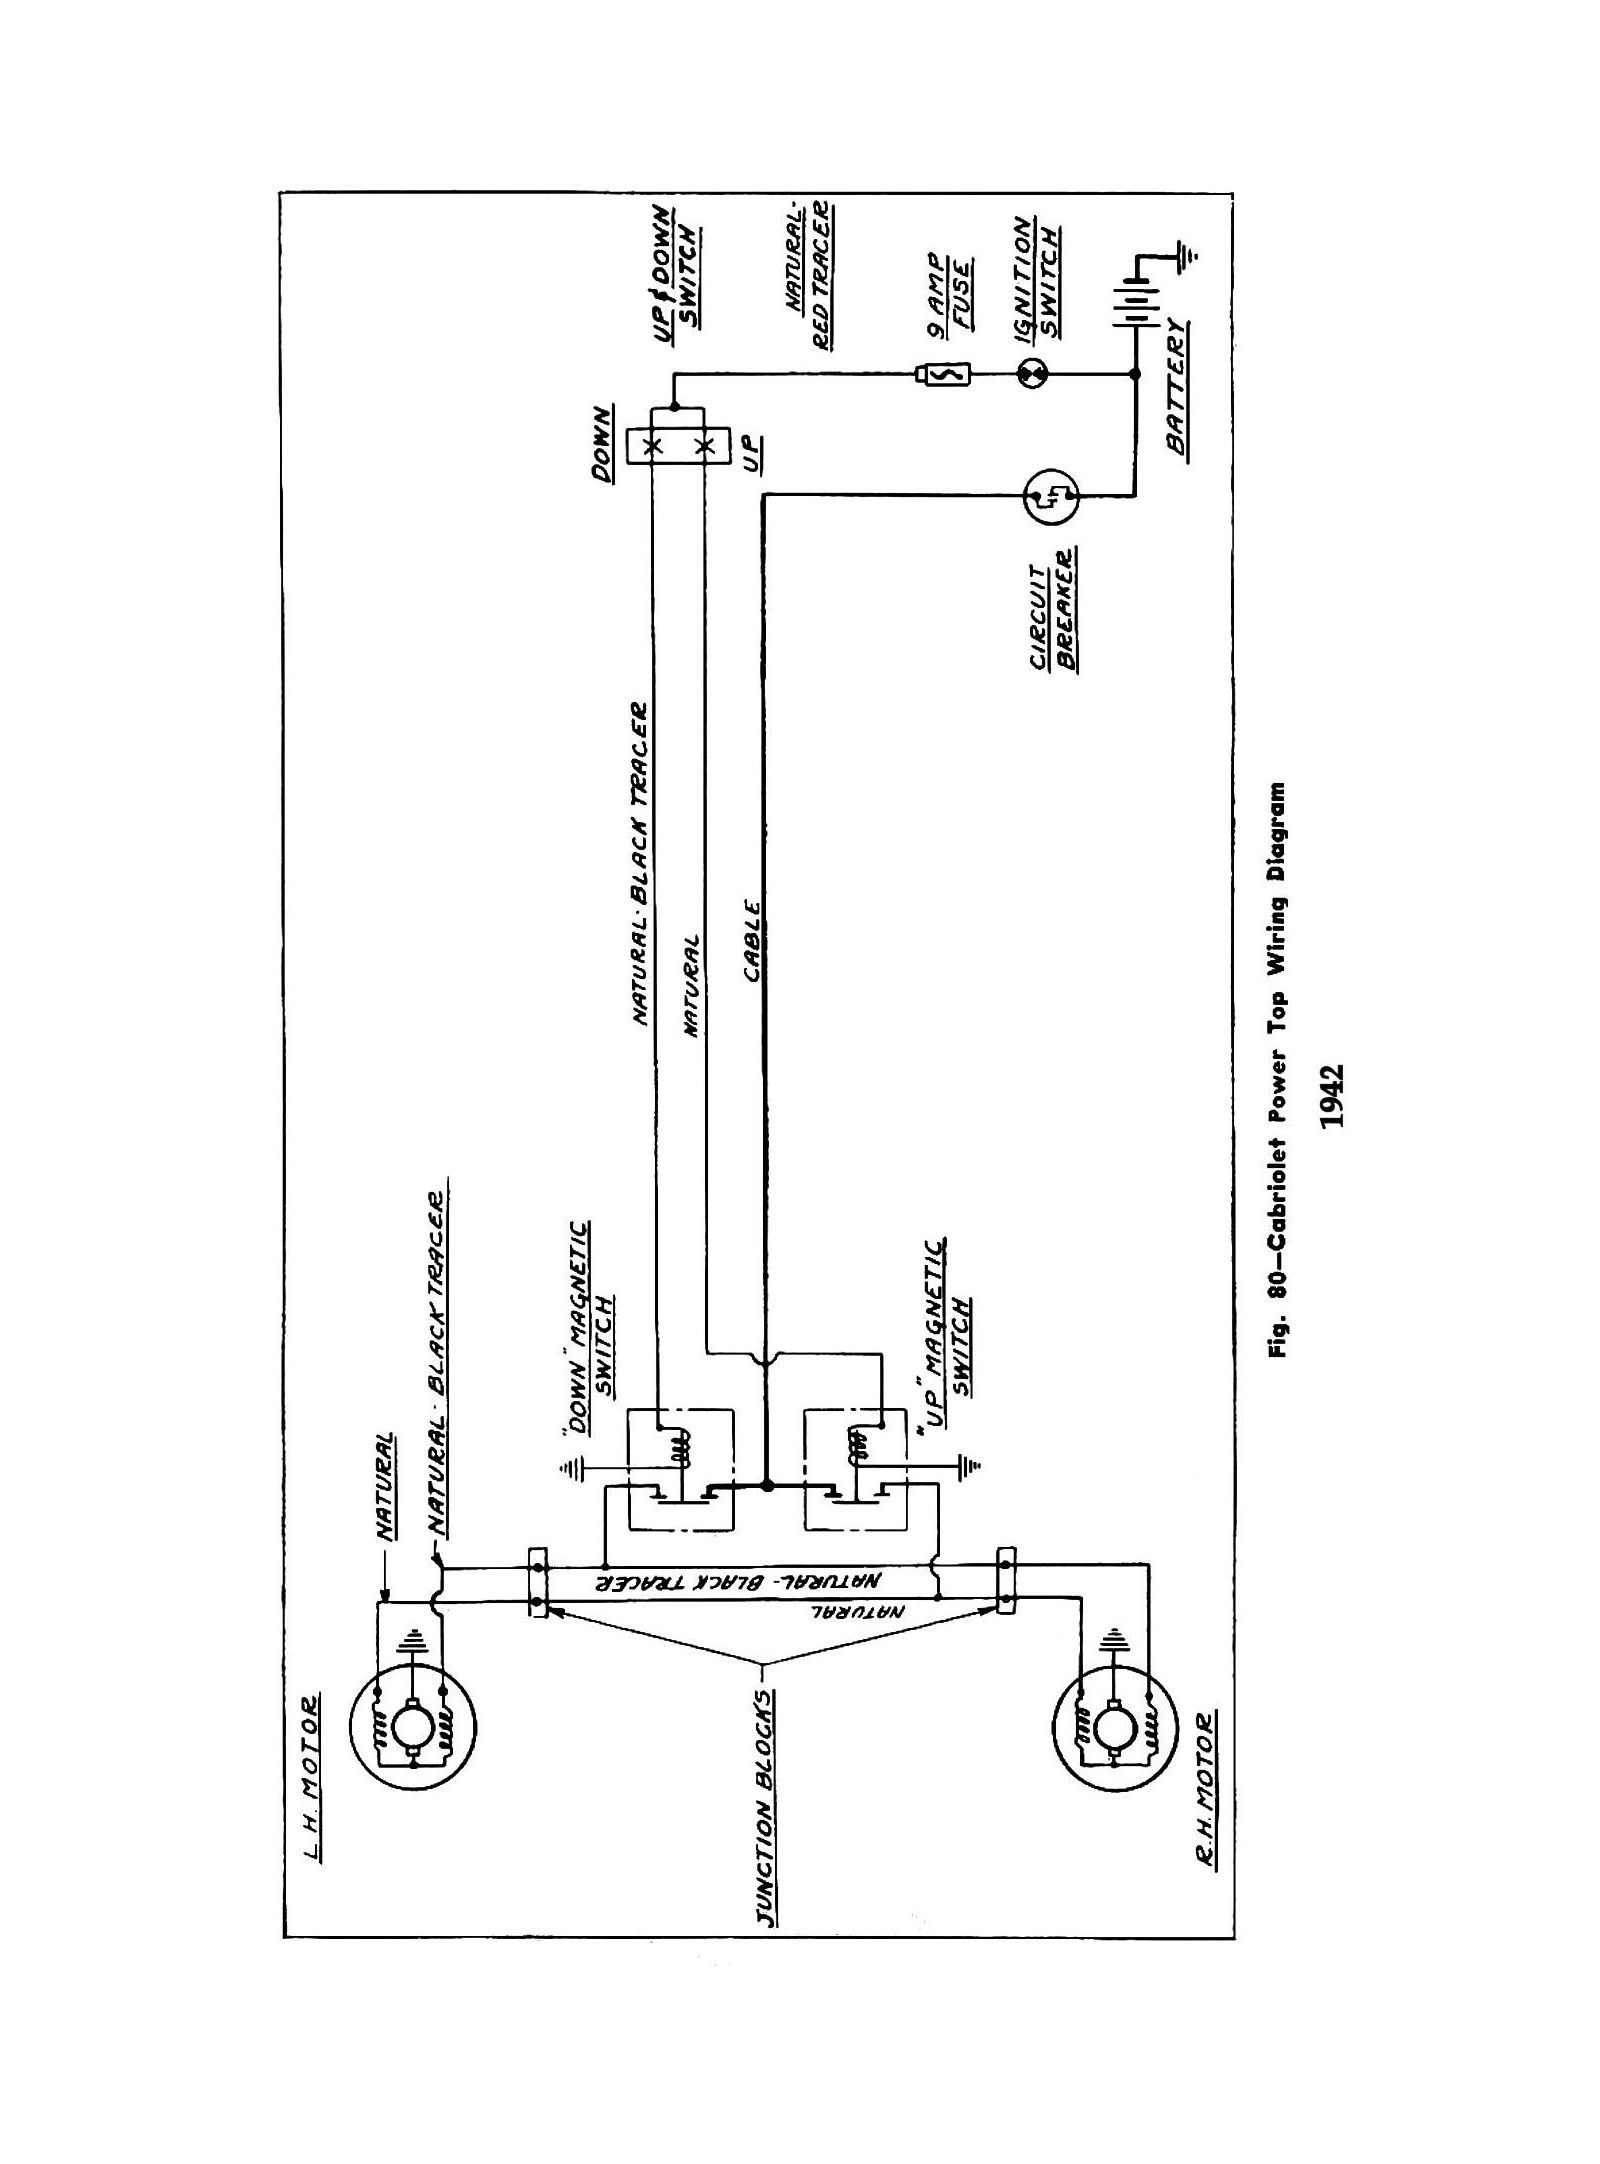 89 Chevy C1500 Ignition Wiring Diagram Get Free Image About Wiring